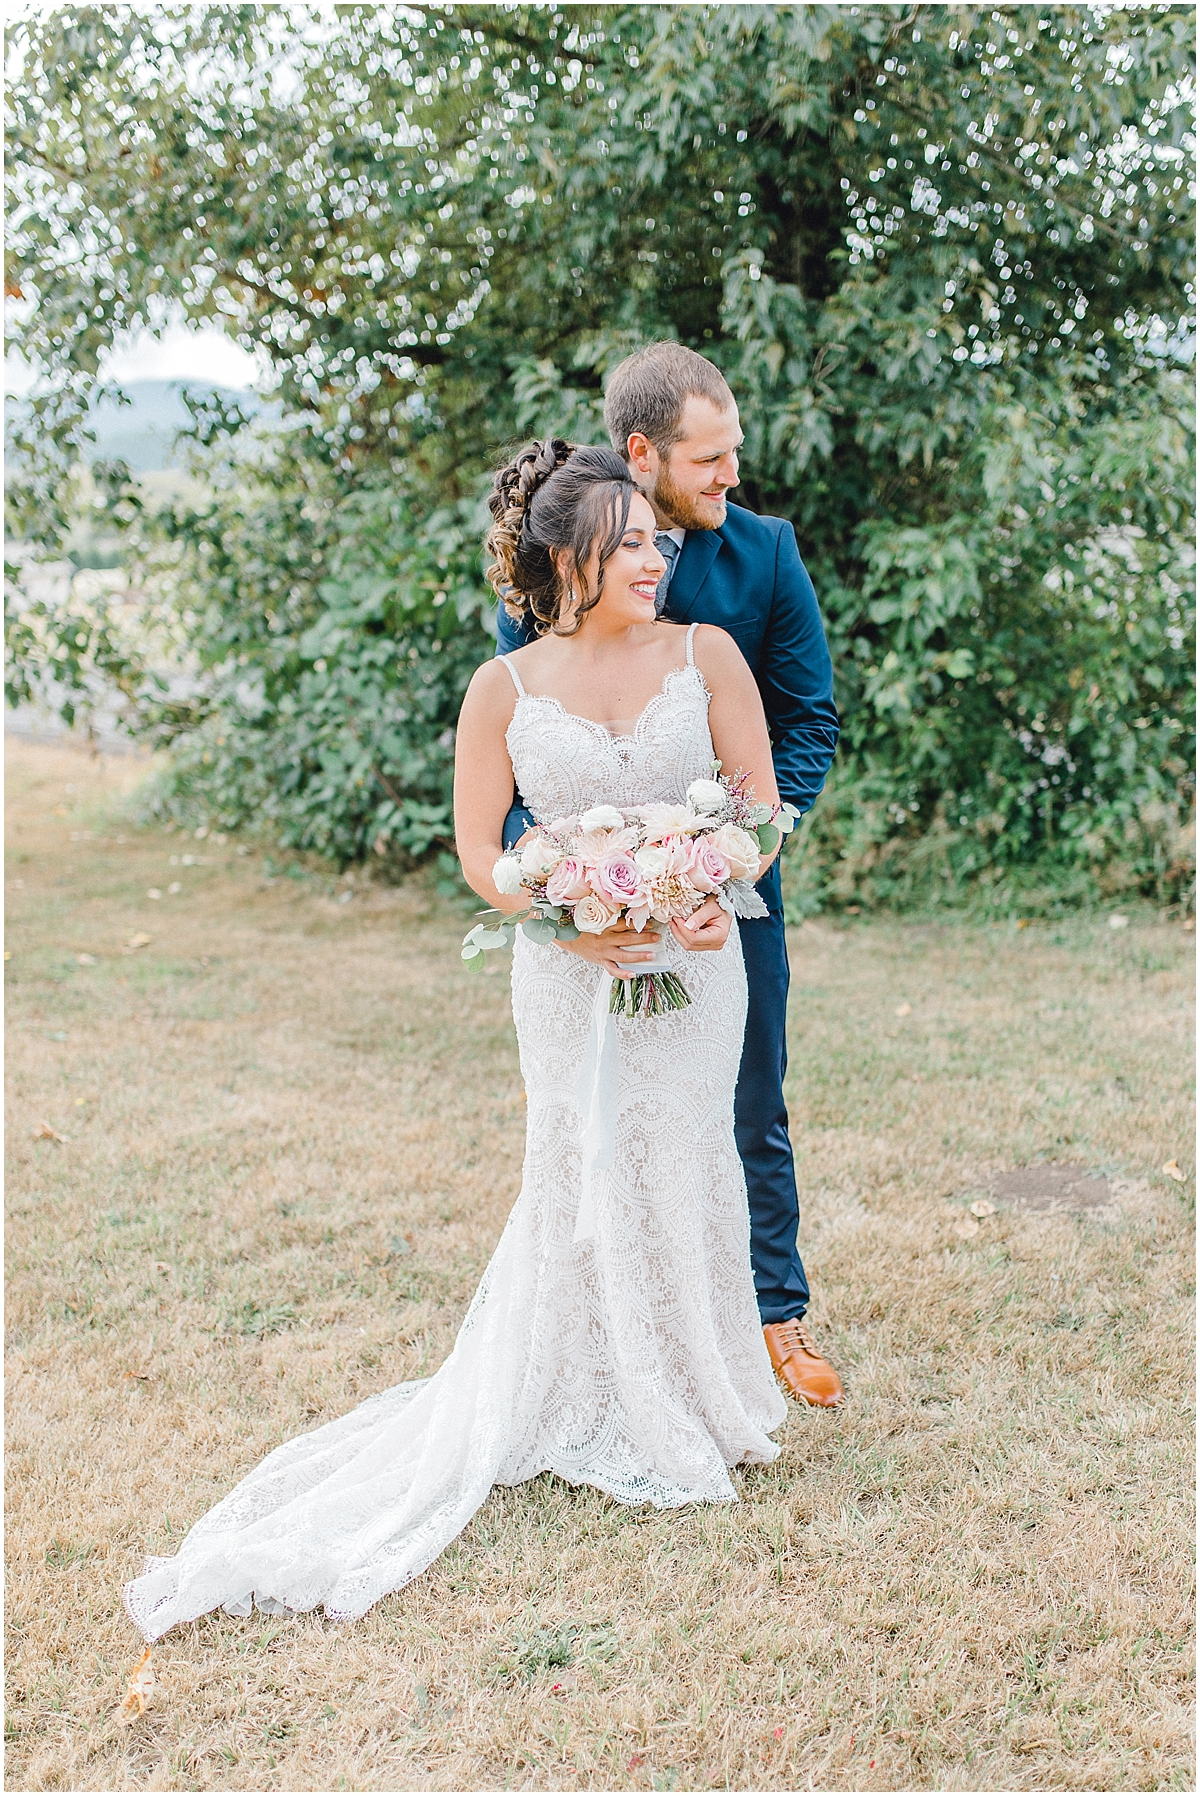 Beautiful mauve wedding in the Pacific Northwest, Emma Rose Company Light and Airy Wedding Photographer Seattle, Washington, Kindred Presets, Wedding Design Details Purple and Blush_0040.jpg